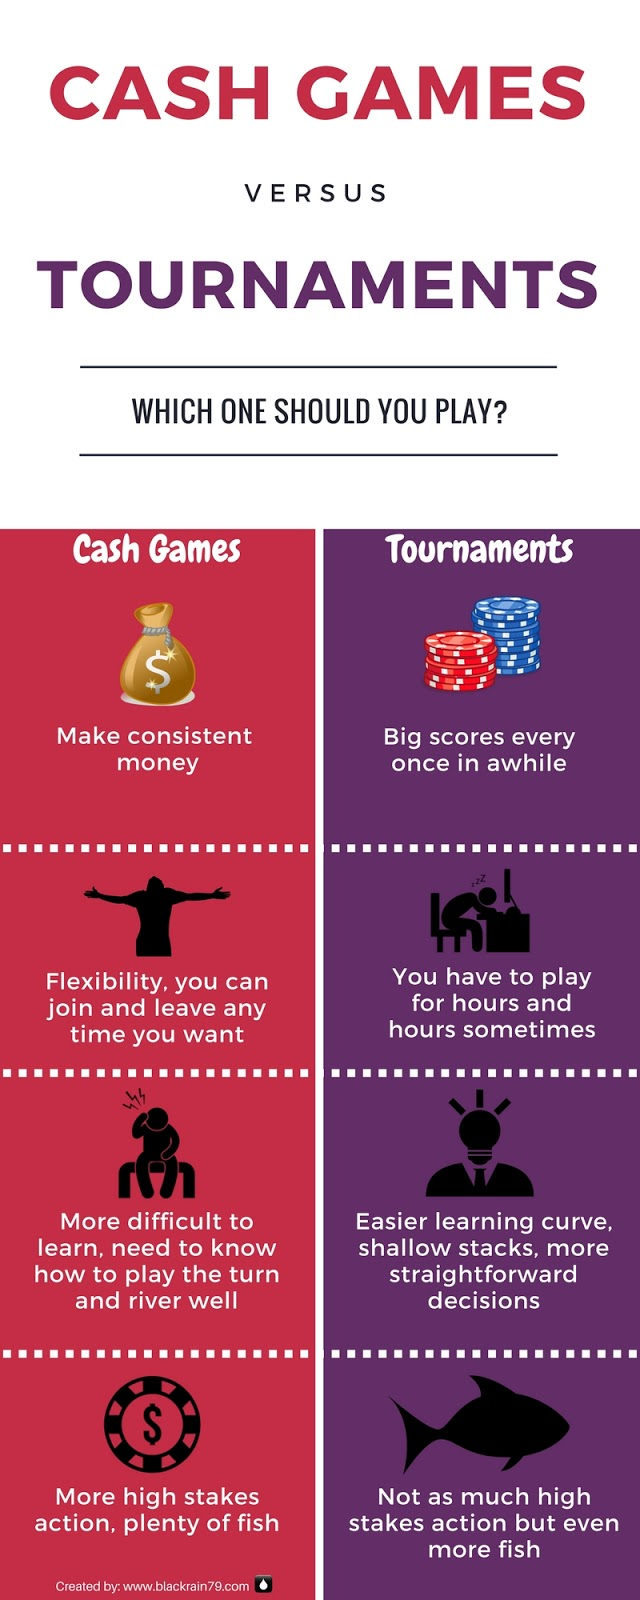 Tournaments vs Cash Games - What the Pros Play